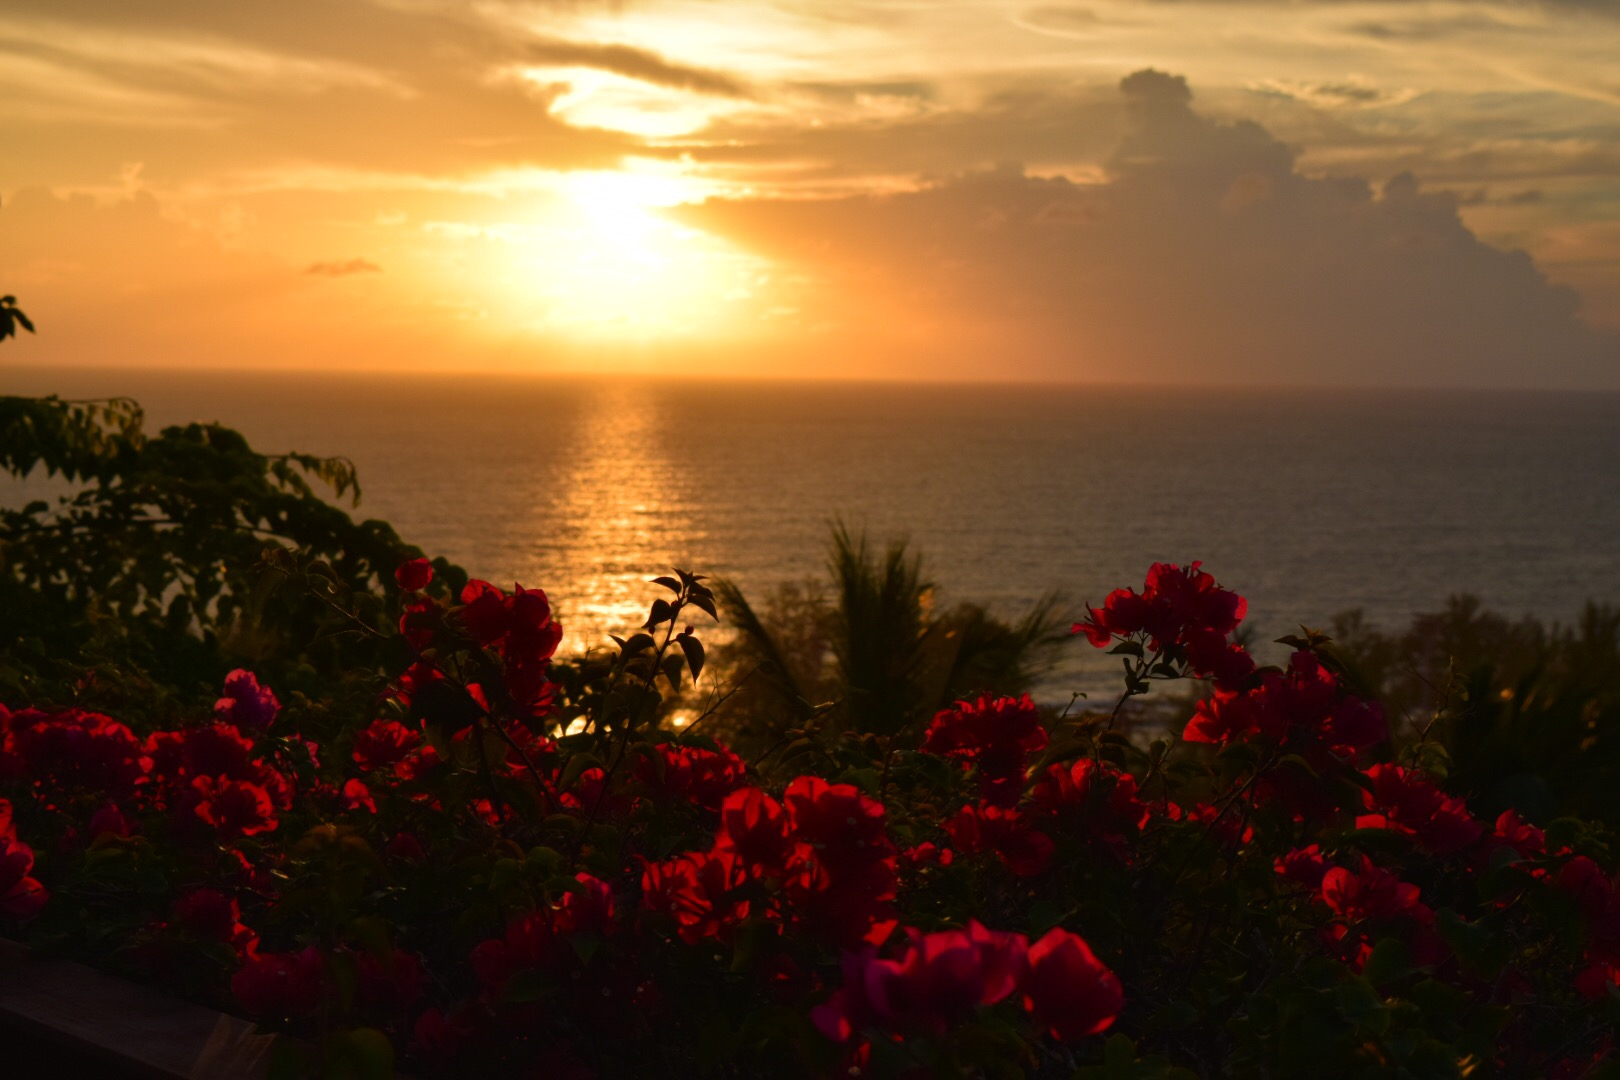 A gorgeous sunset from our Phuket rental house overlooking the Andaman Sea.